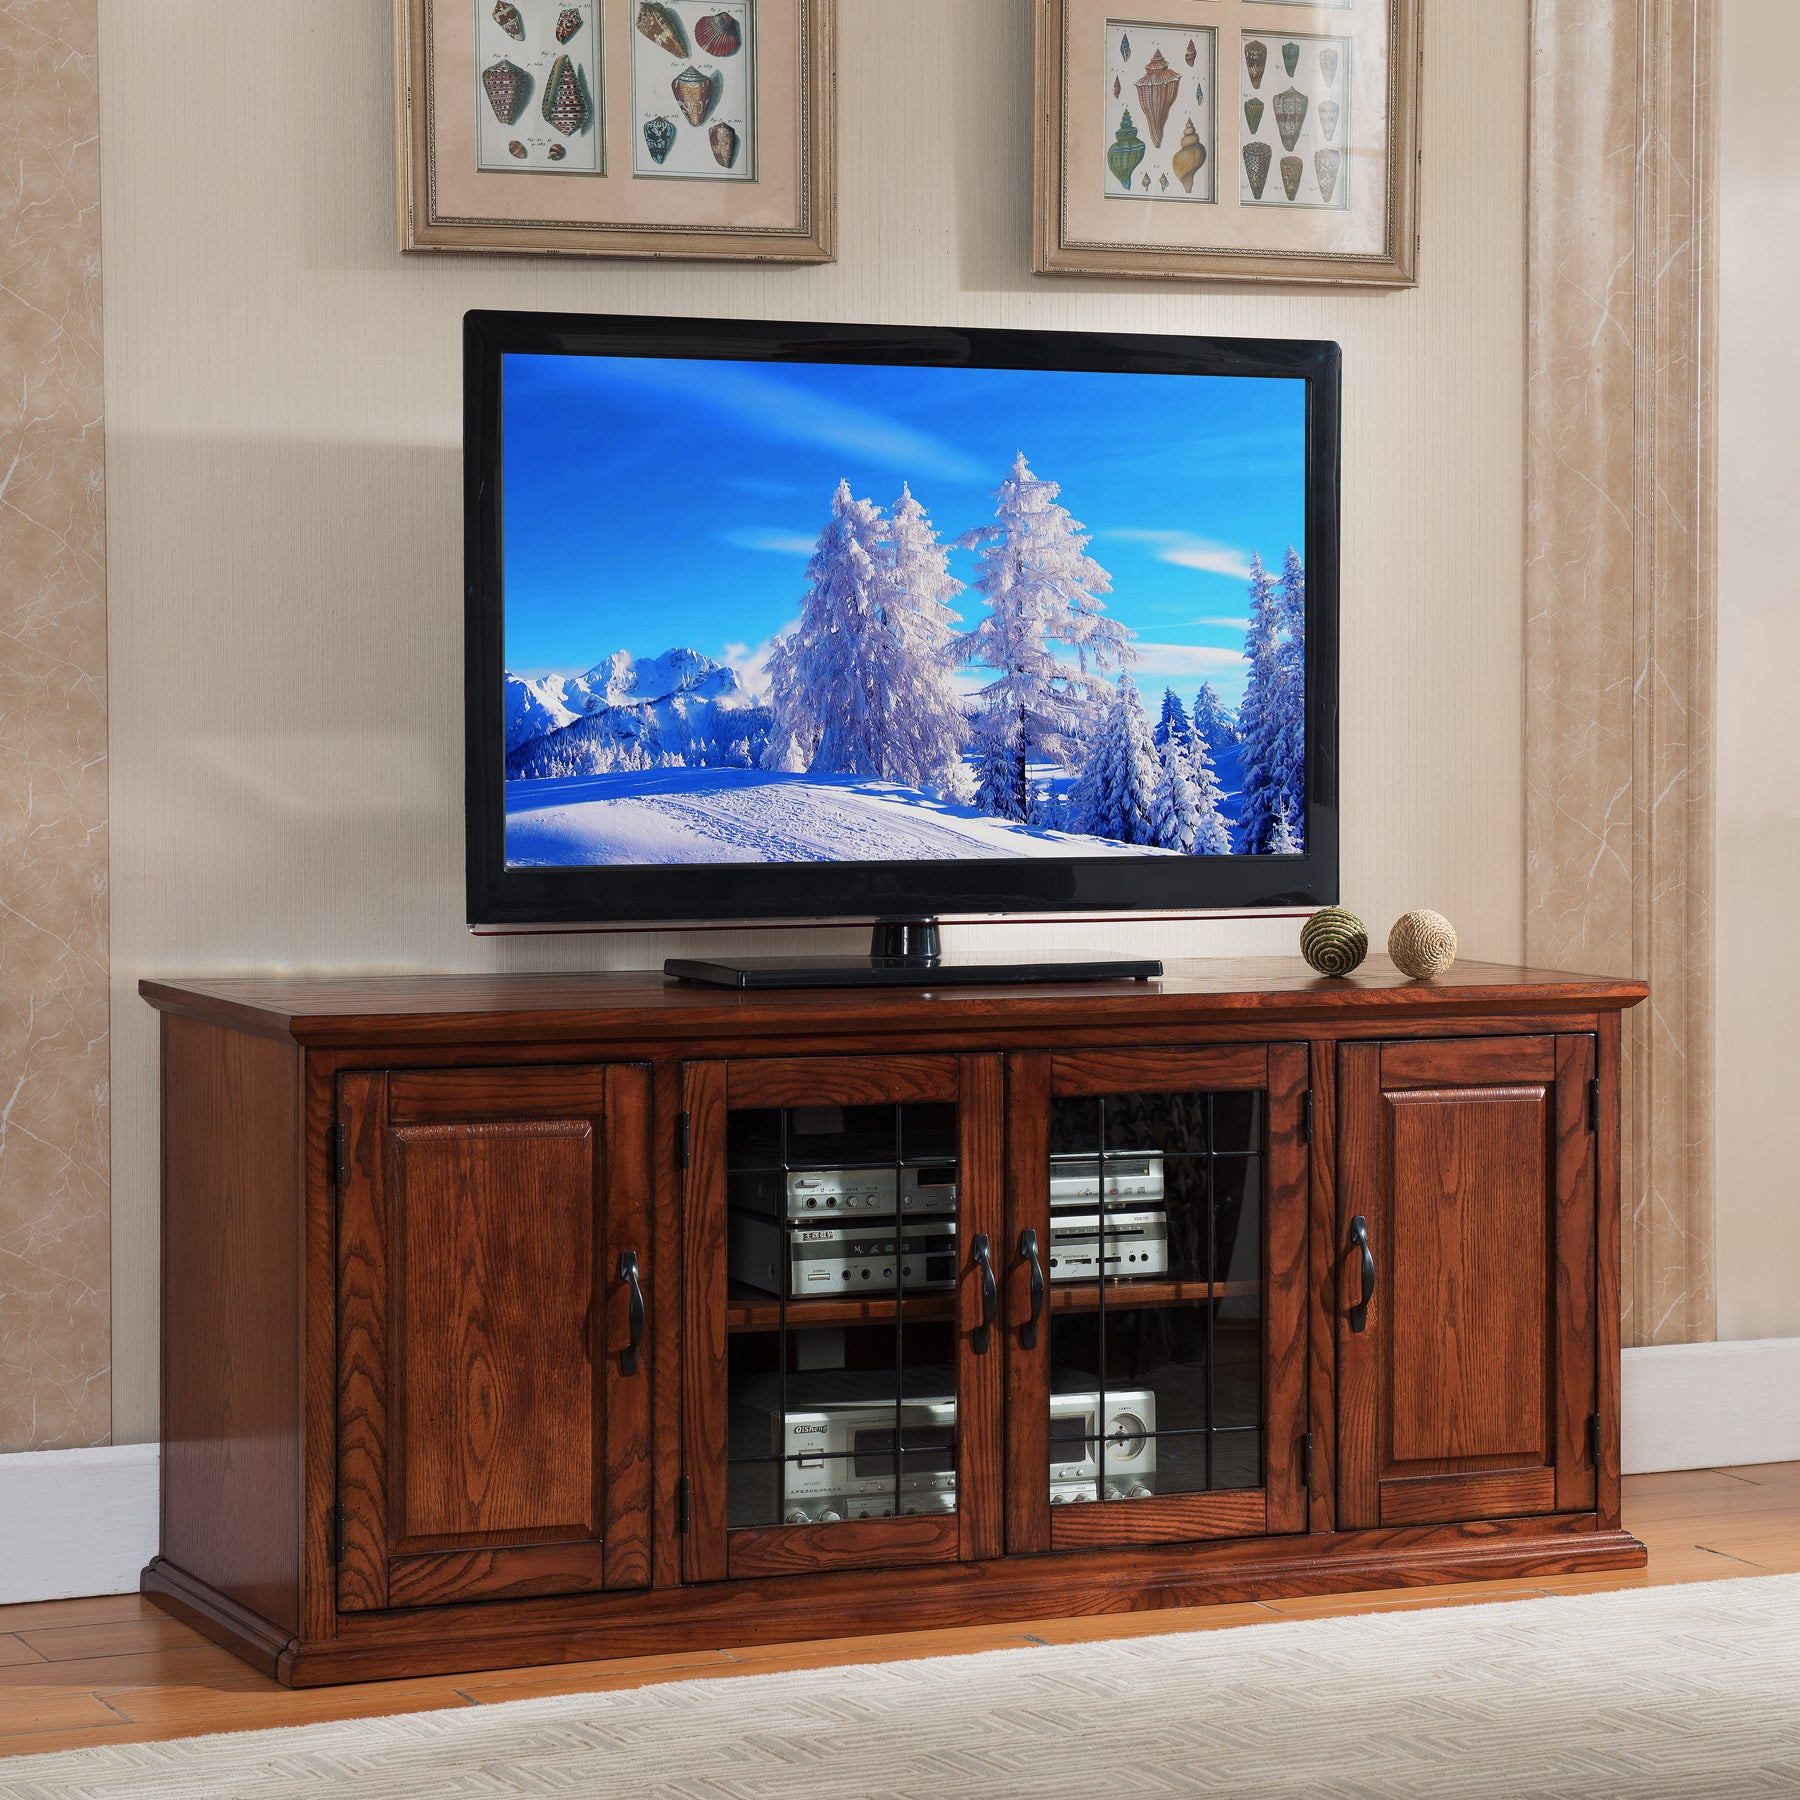 Shop Kd Furnishings Oak Finish Wood Glass 60 Inch Tv Stand Free